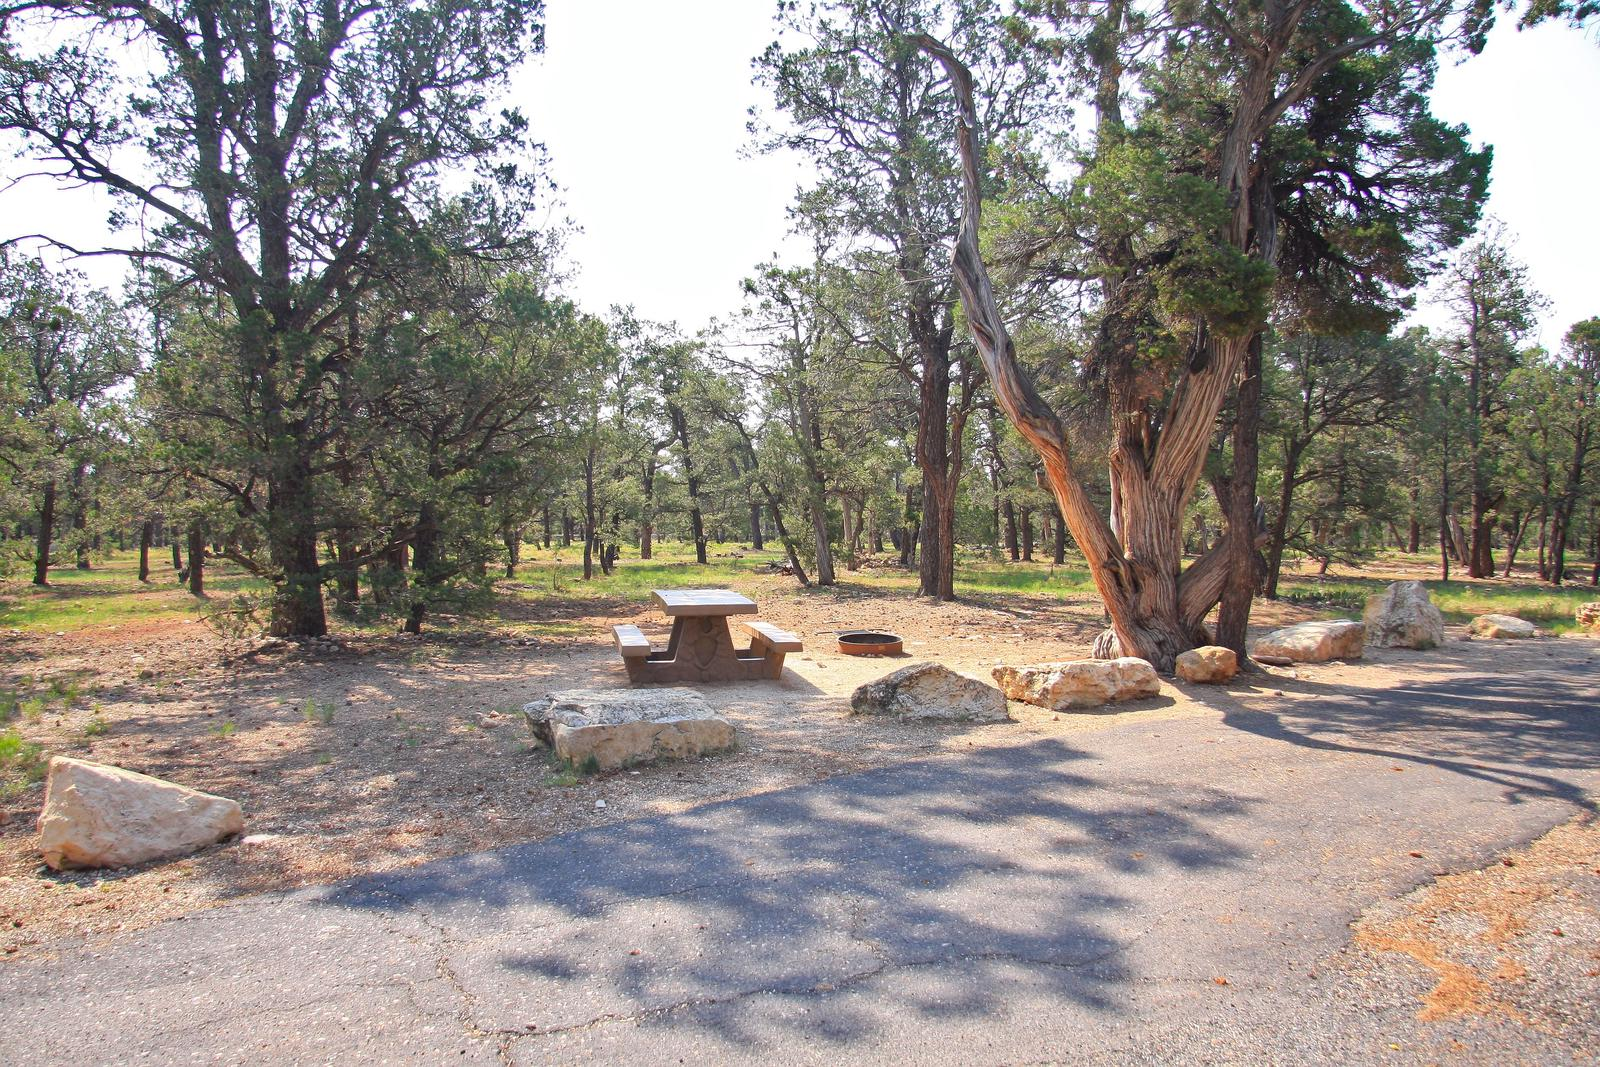 Picnic table, fire pit, and parking spot, Mather CampgroundPicnic table, fire pit, and parking spot for Juniper Loop 172, Mather Campground